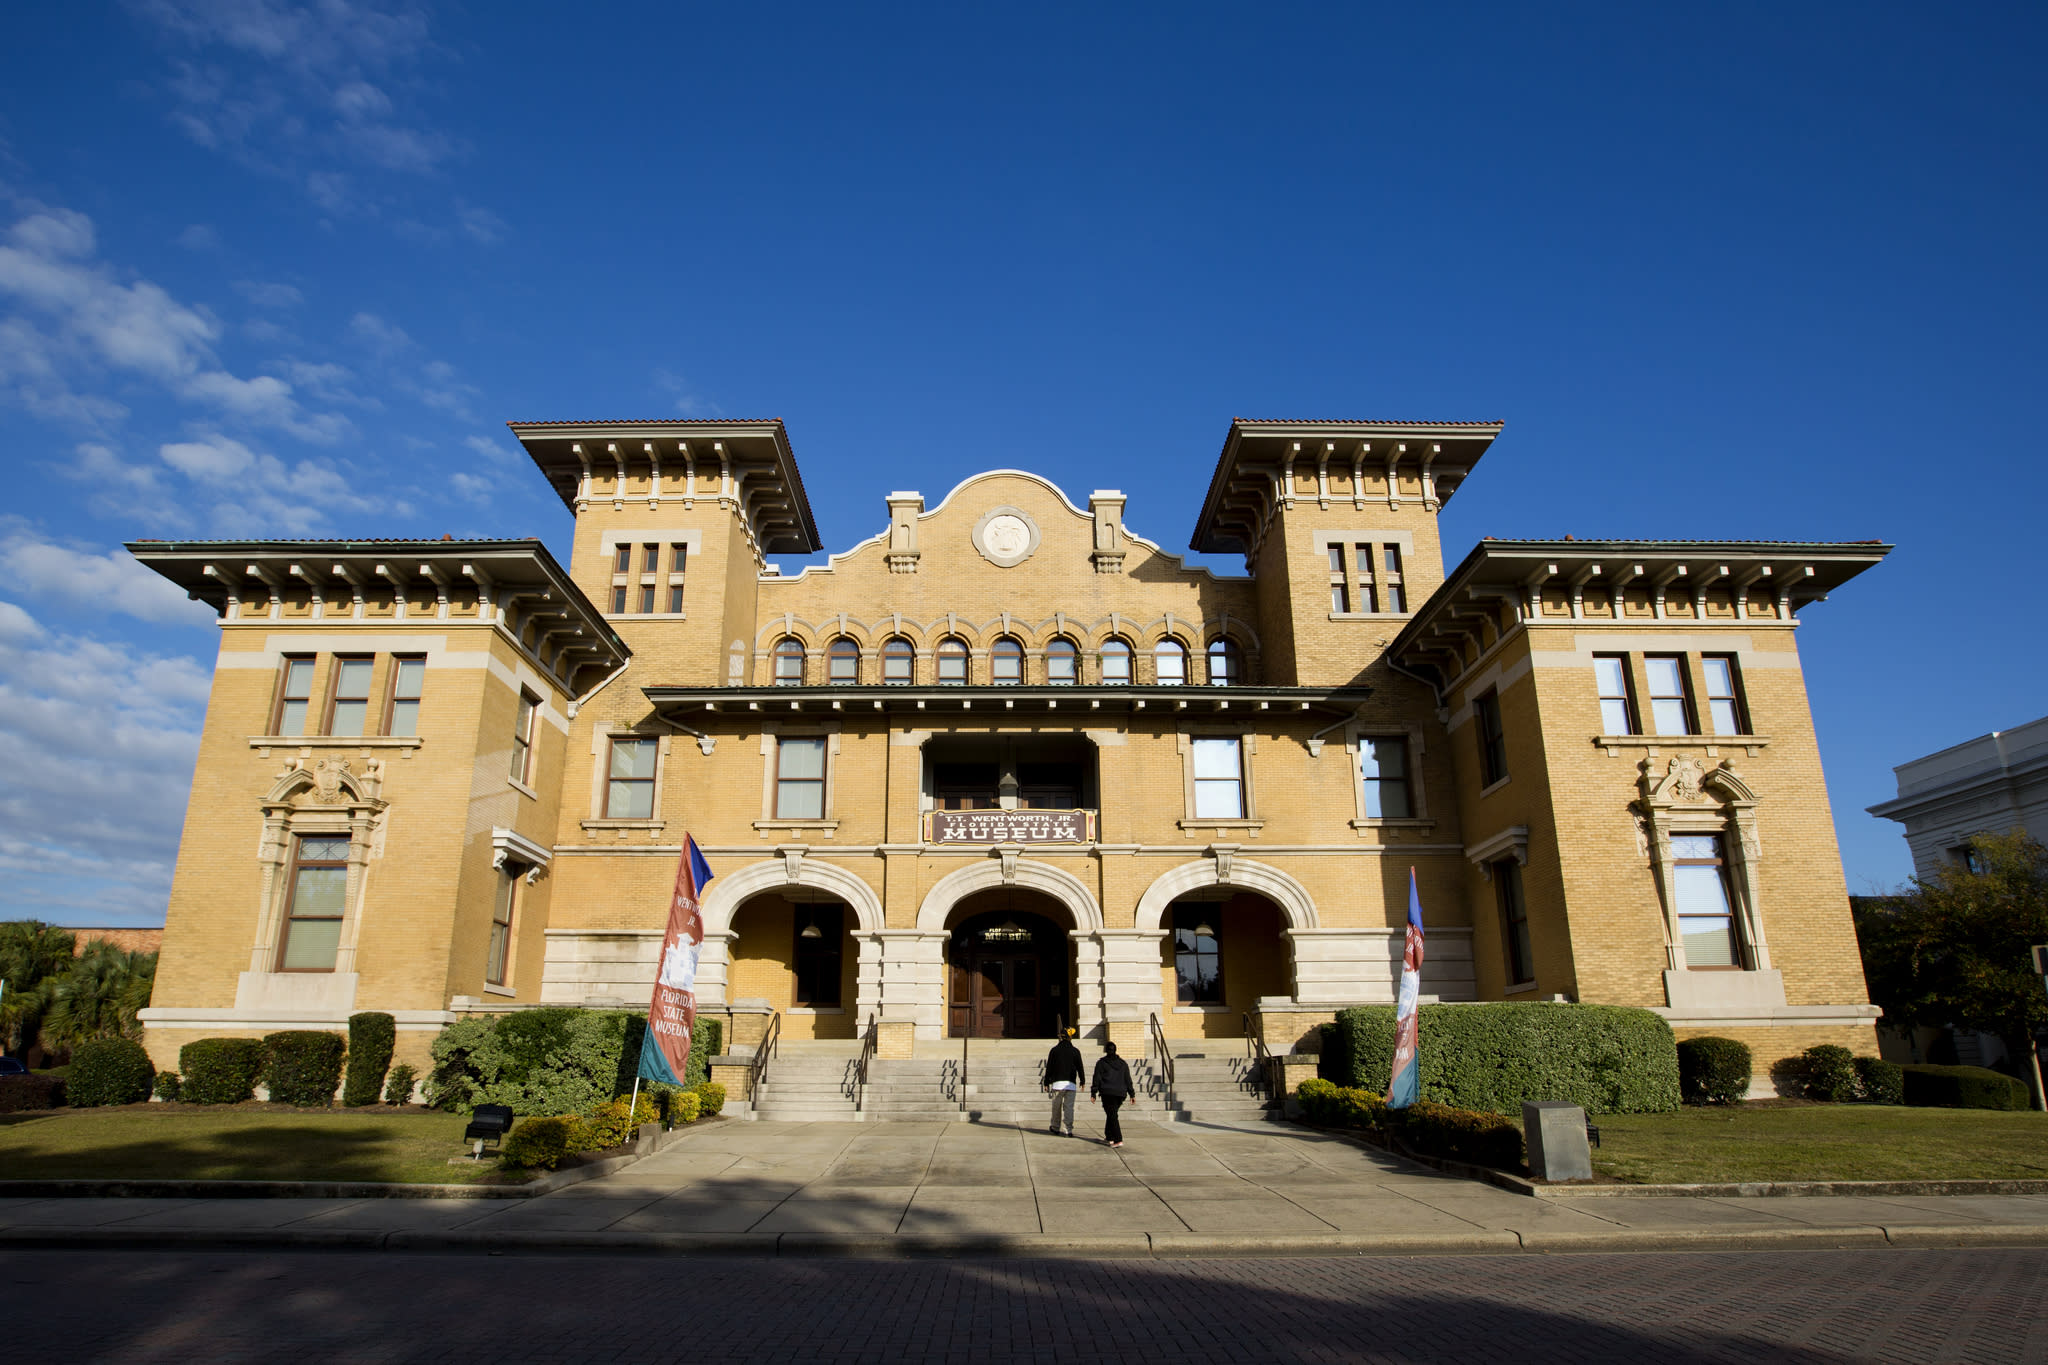 The tour starts at the three-story T.T. Wentworth Jr. Florida State Museum, in the former City Hall built in 1908.  The quirky collection here includes a 450-year-old anchor and a petrified cat.